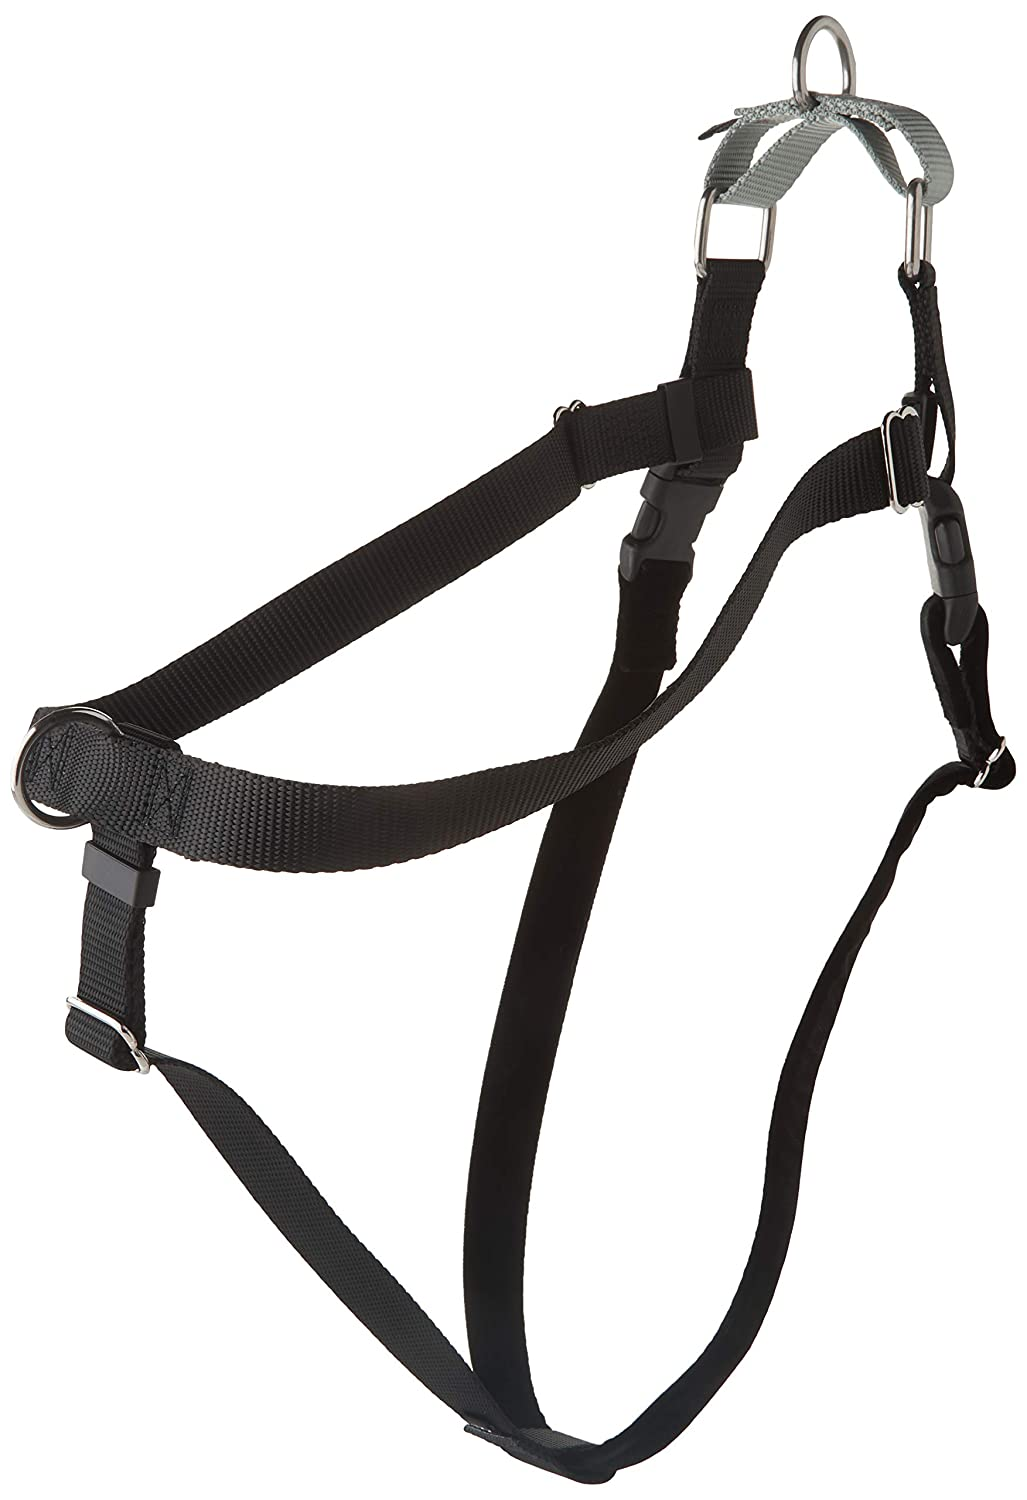 Black XX-Large Black XX-Large 2 Hounds Design HN XXL BK Freedom No-Pull Harness Only, (1  Wide), Black, XX-Large